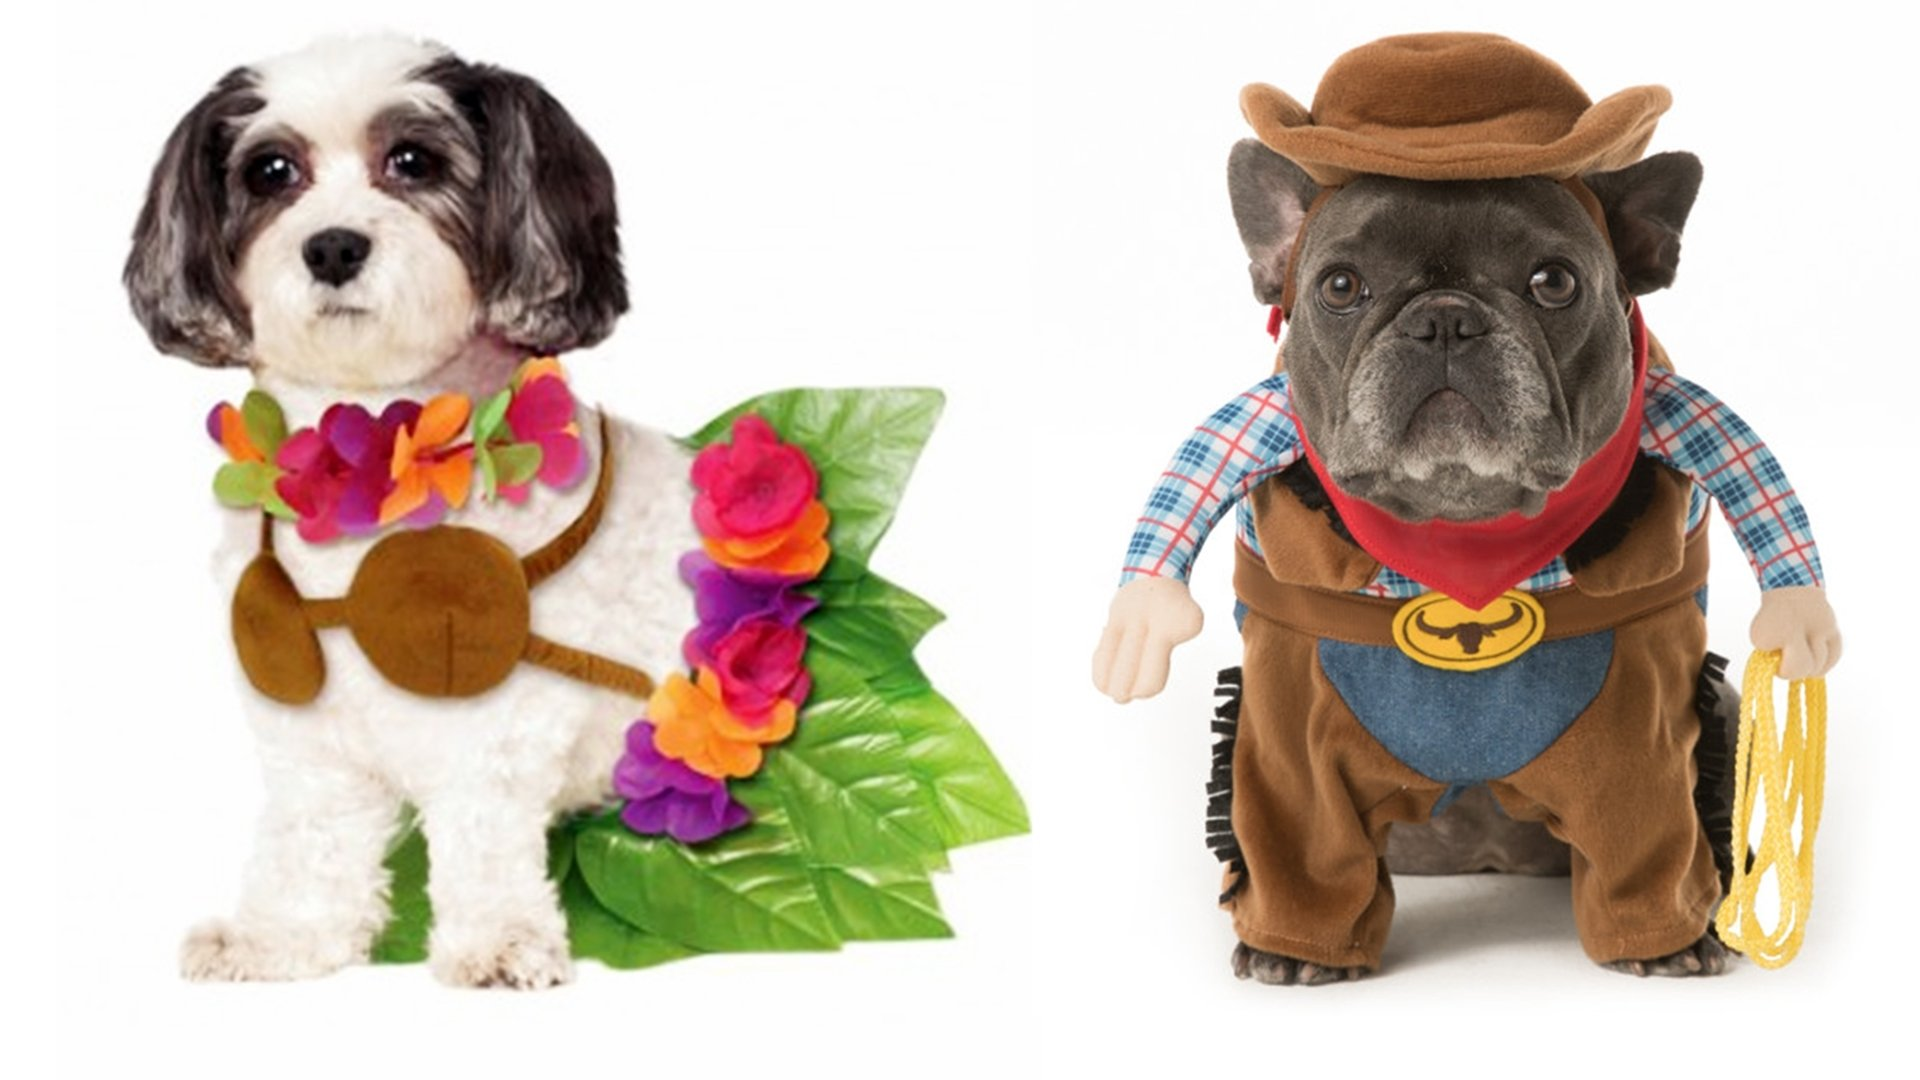 10 Stylish Halloween Costumes For Dogs Ideas halloween dog costume ideas 32 easy cute costumes for your canine 1 2020